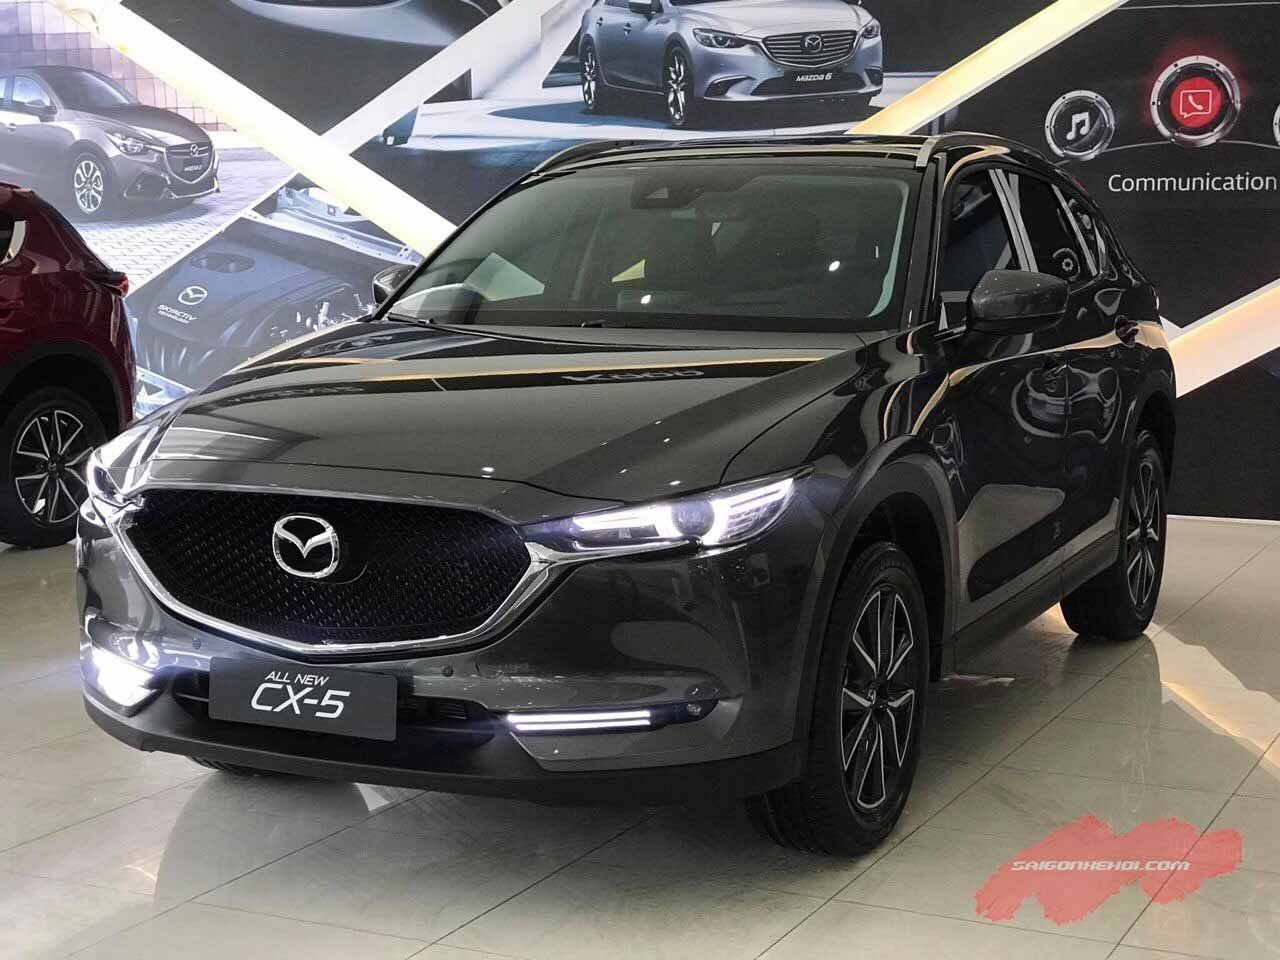 Xe Mazda Cx5 2020 Specs The Xe Mazda Cx5 2020 continues to